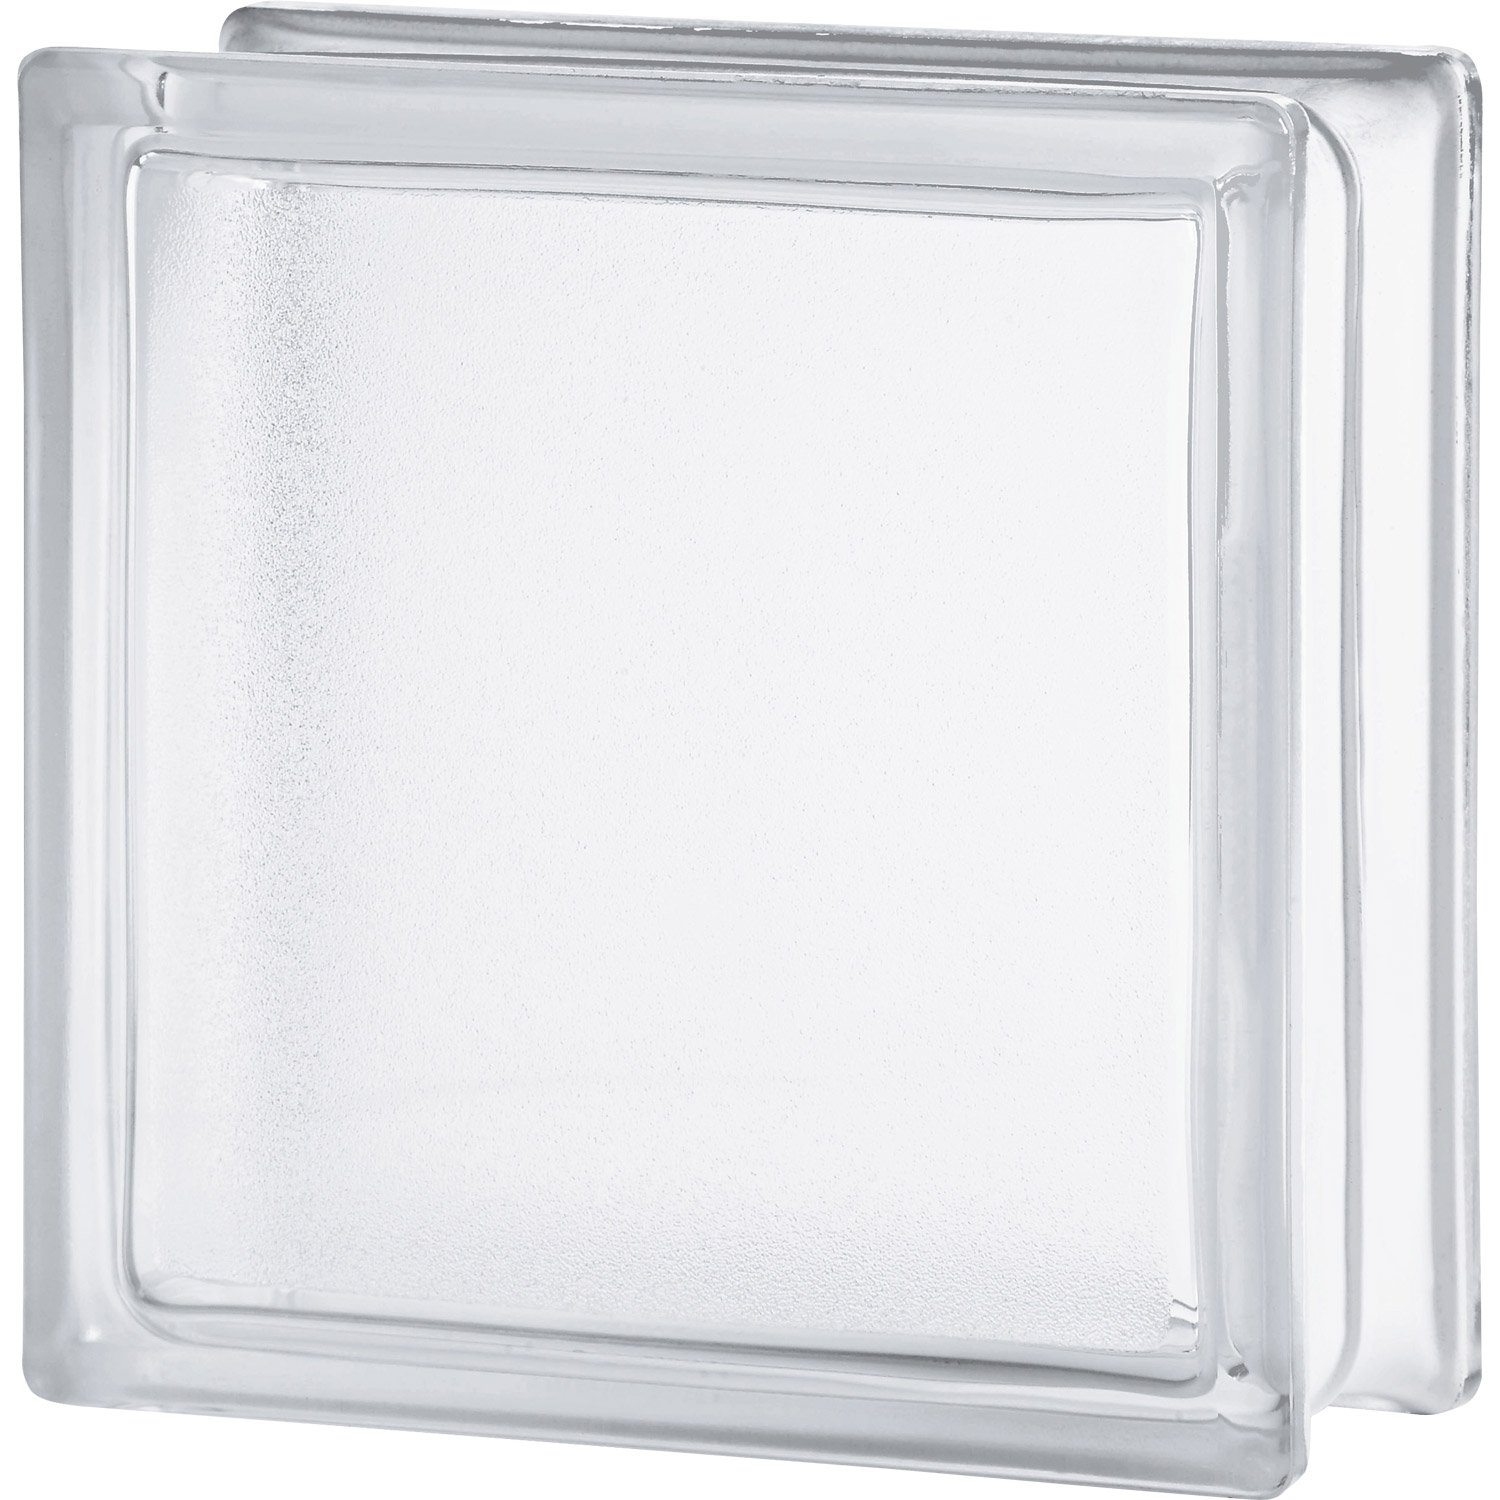 brique de verre transparent lisse double face leroy merlin